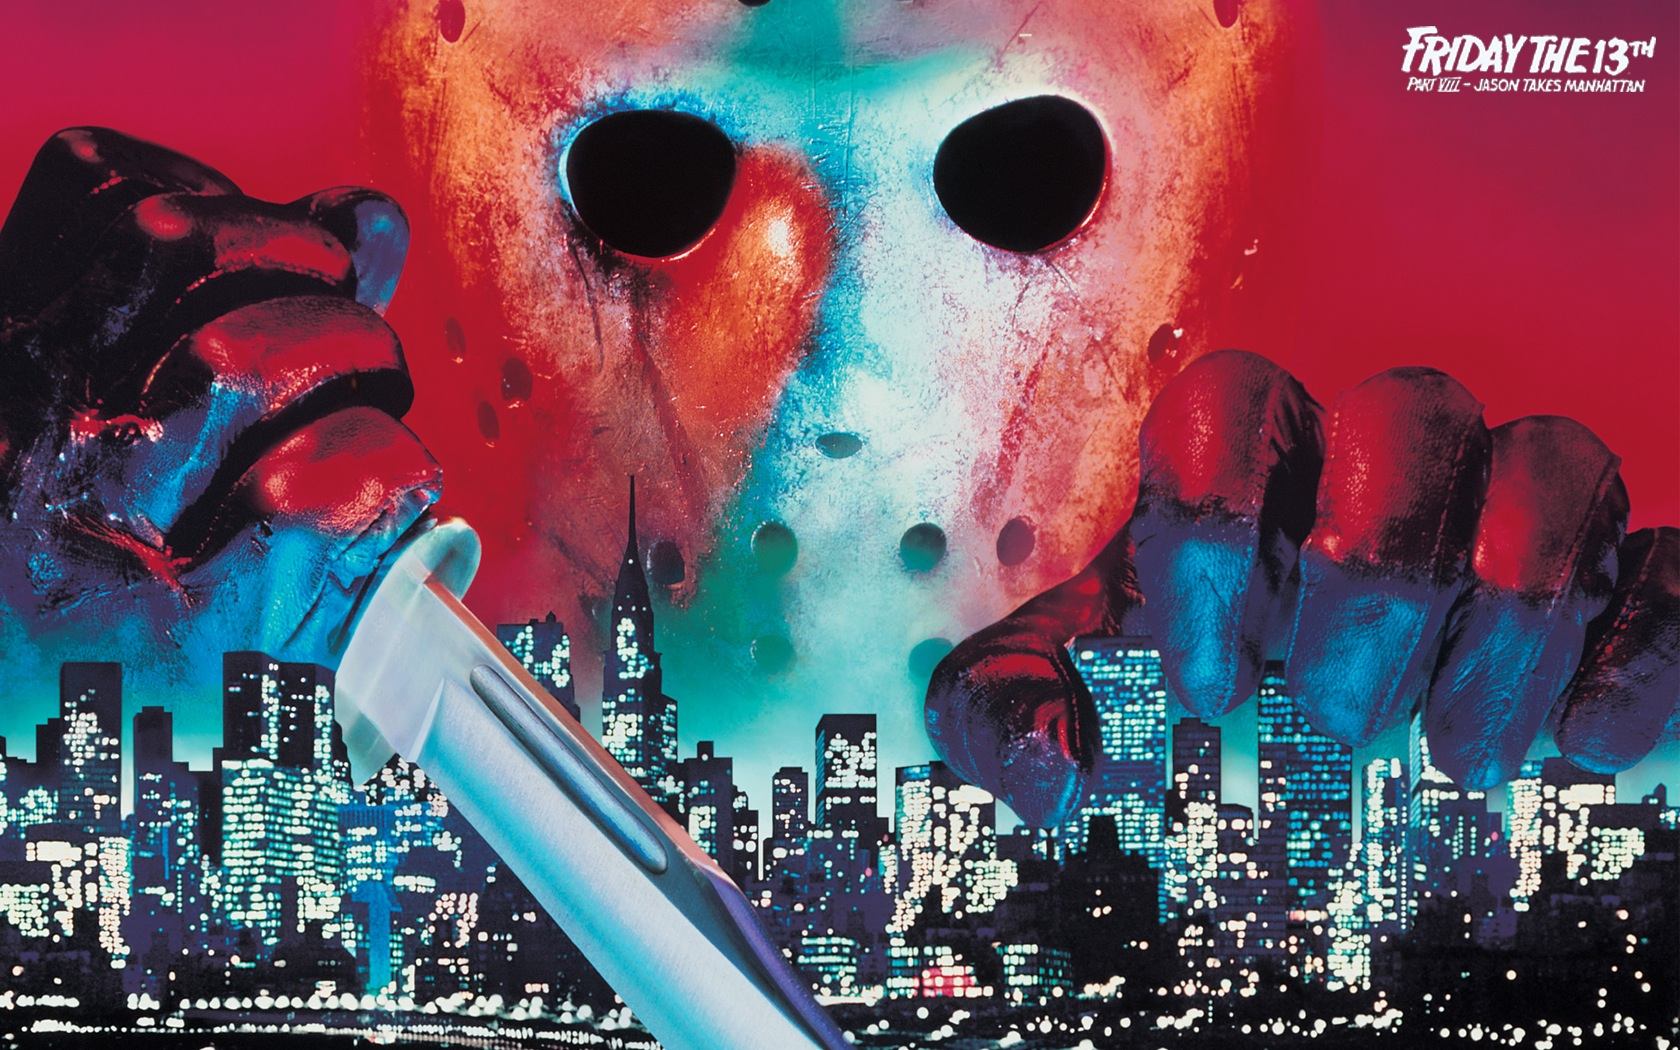 Friday_the_13th_Part_VIII-_Jason_Takes_Manhattan_wallpapers_36402